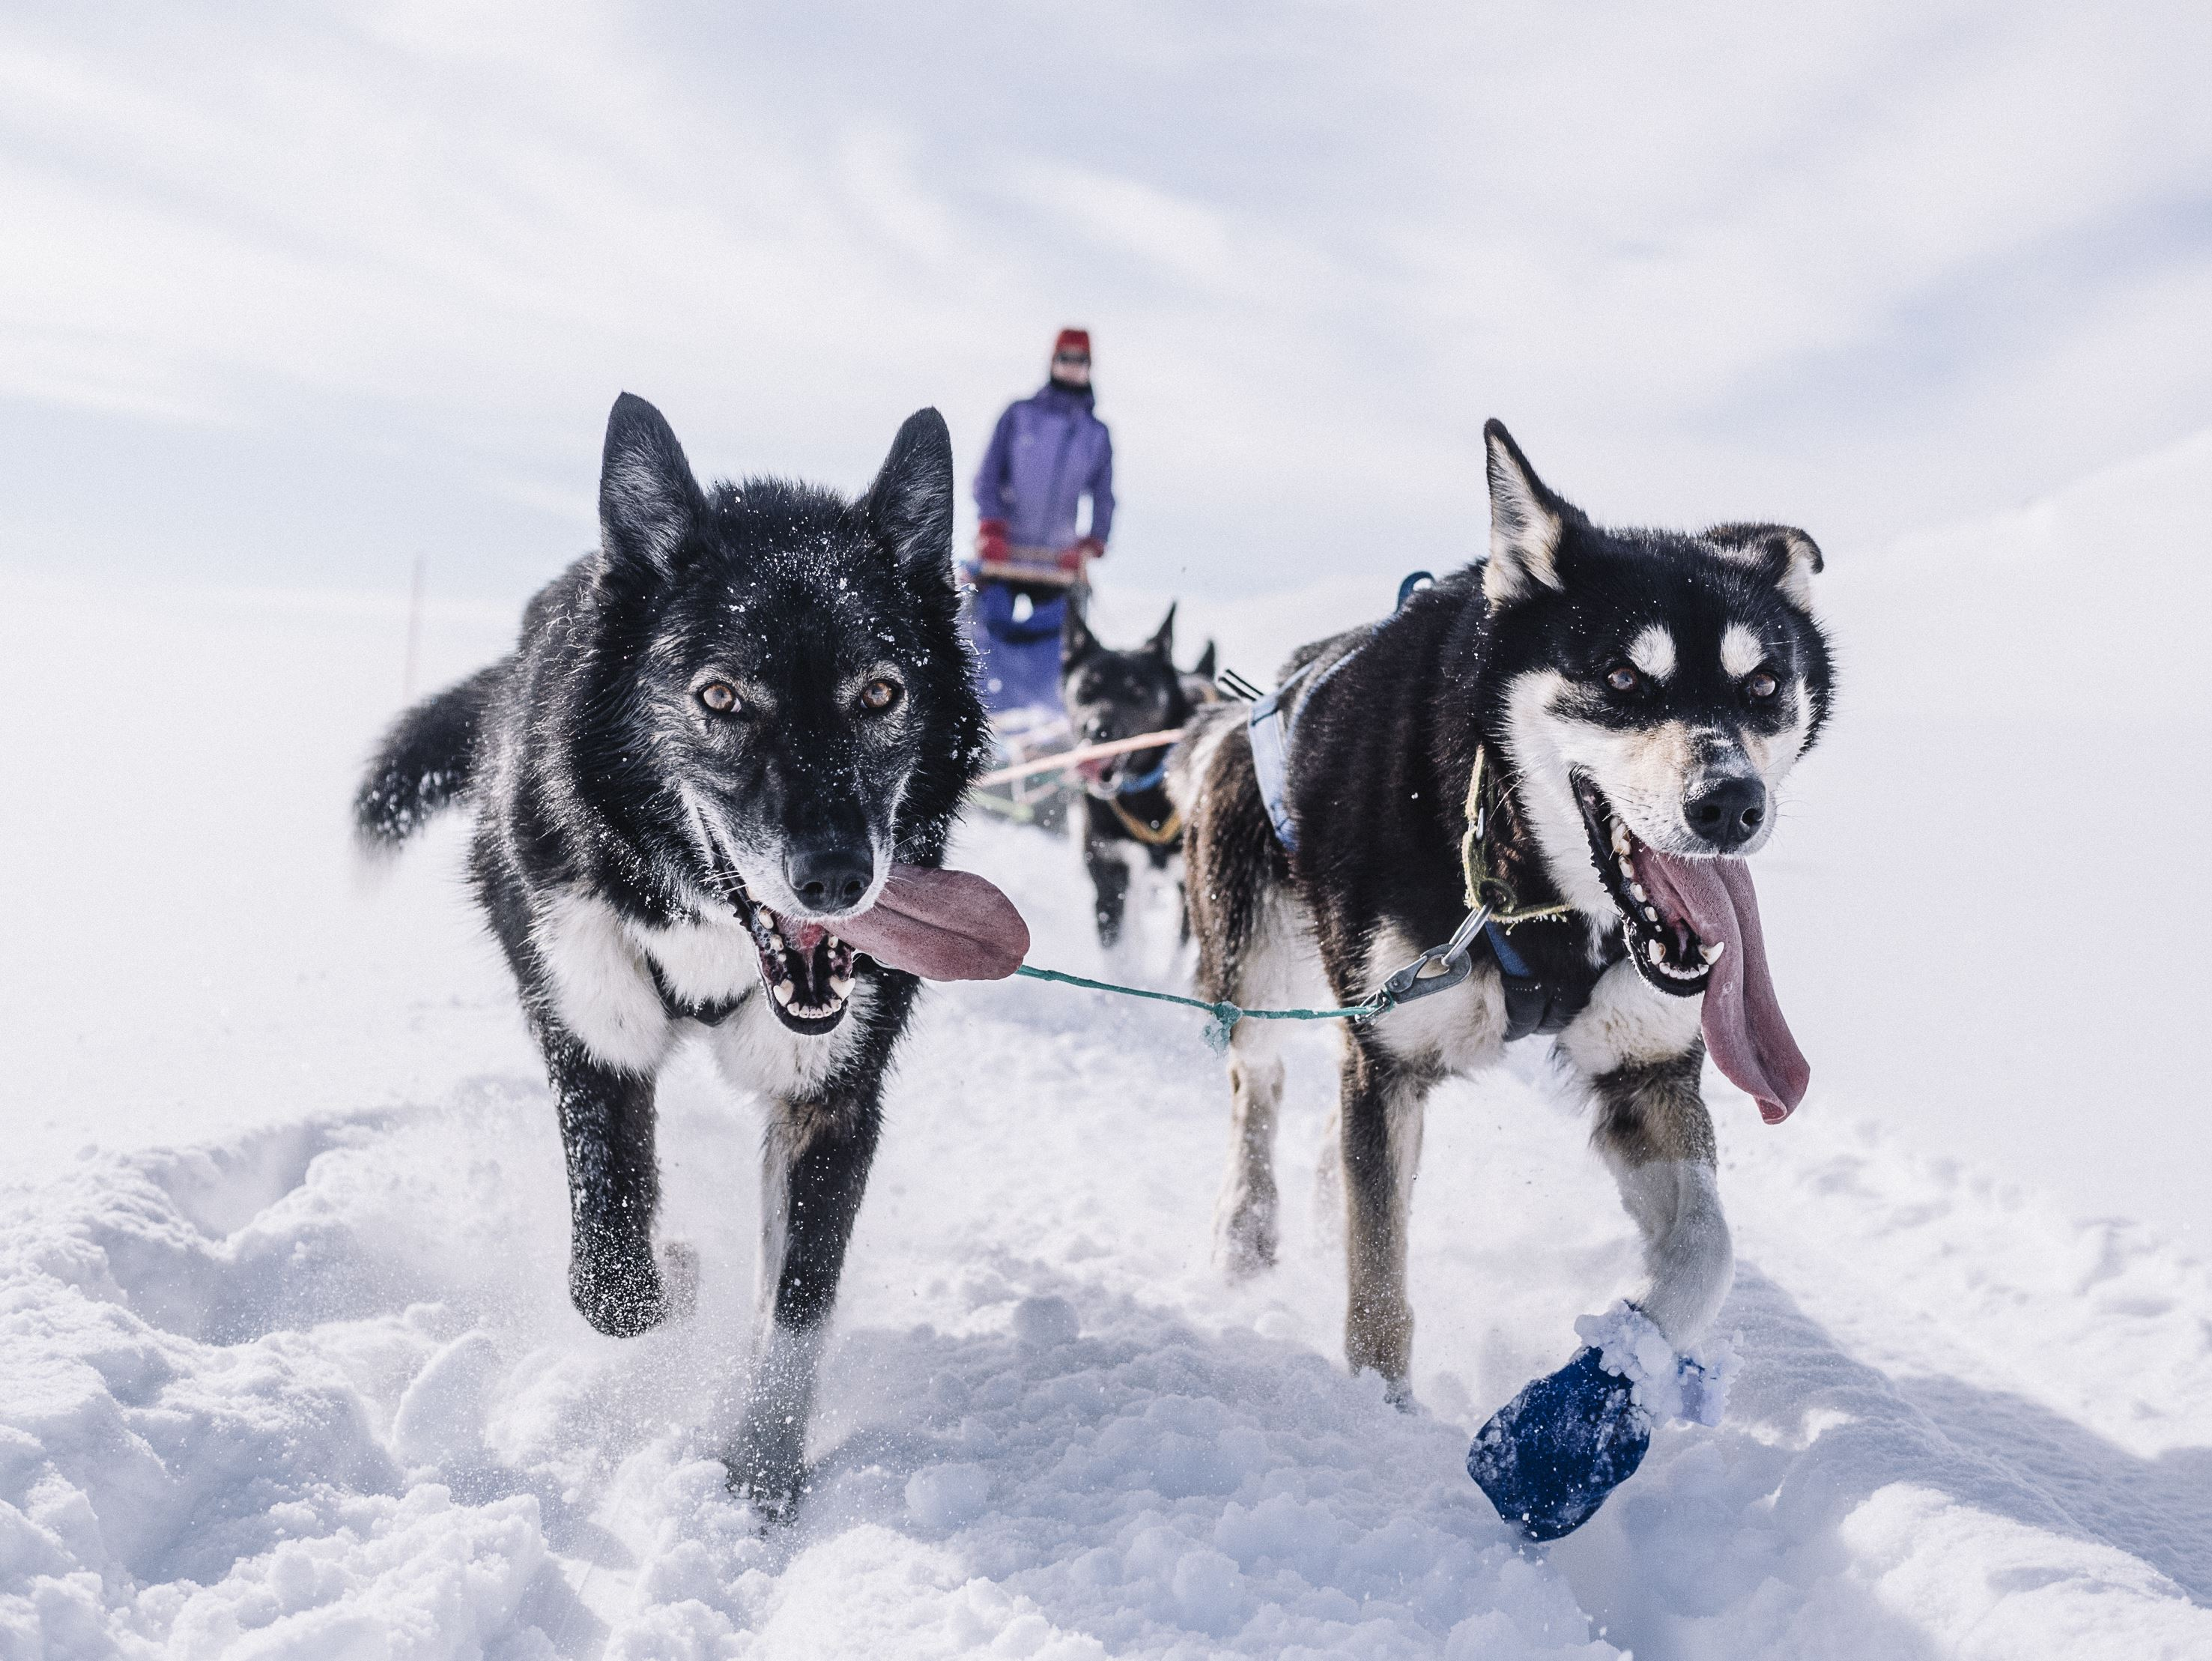 A taste of dog sledding